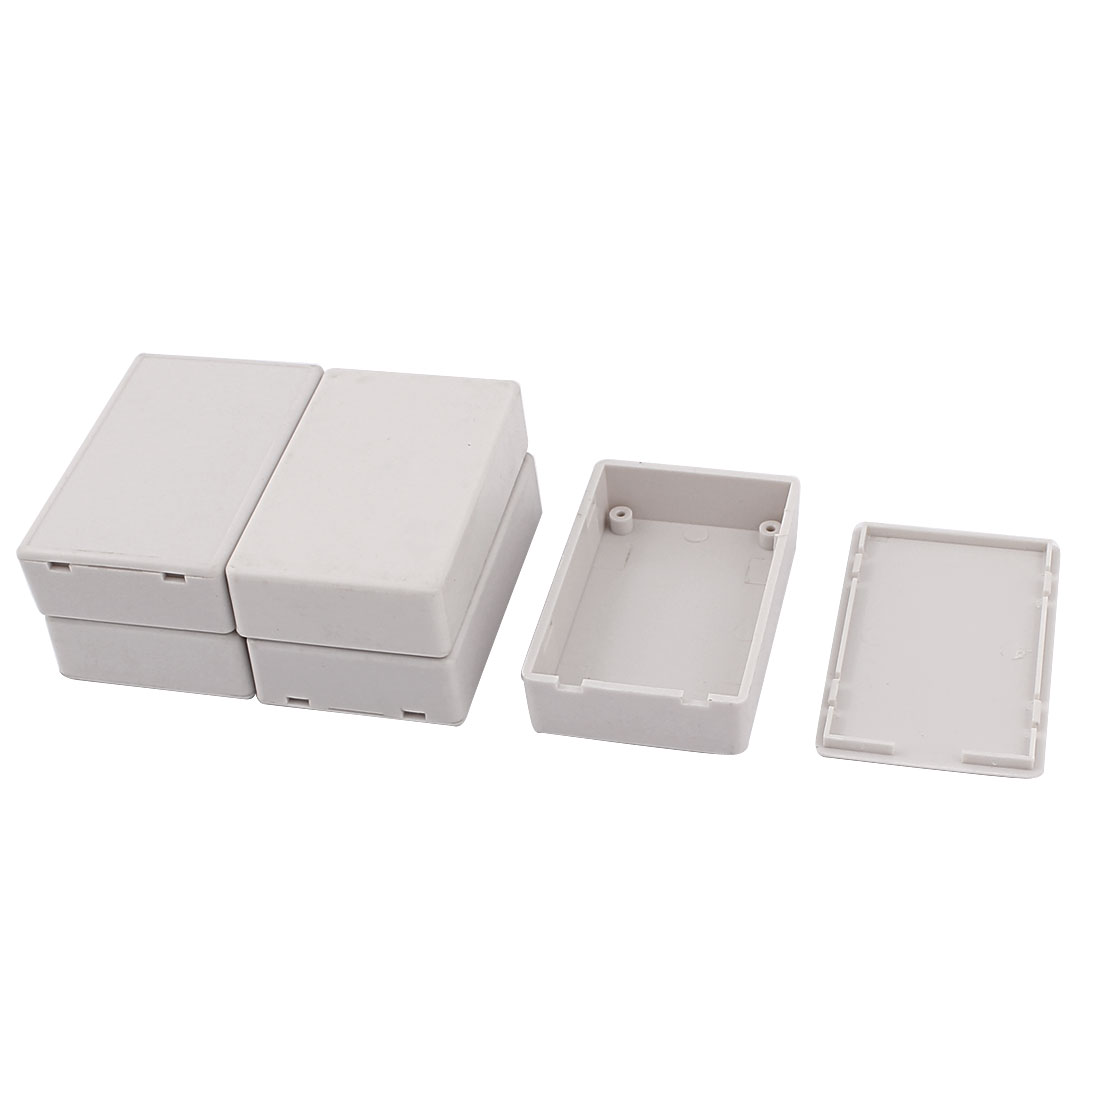 5pcs PlasticPower Protector Project Case DIY Junction Box 70mmx46mmx19mm